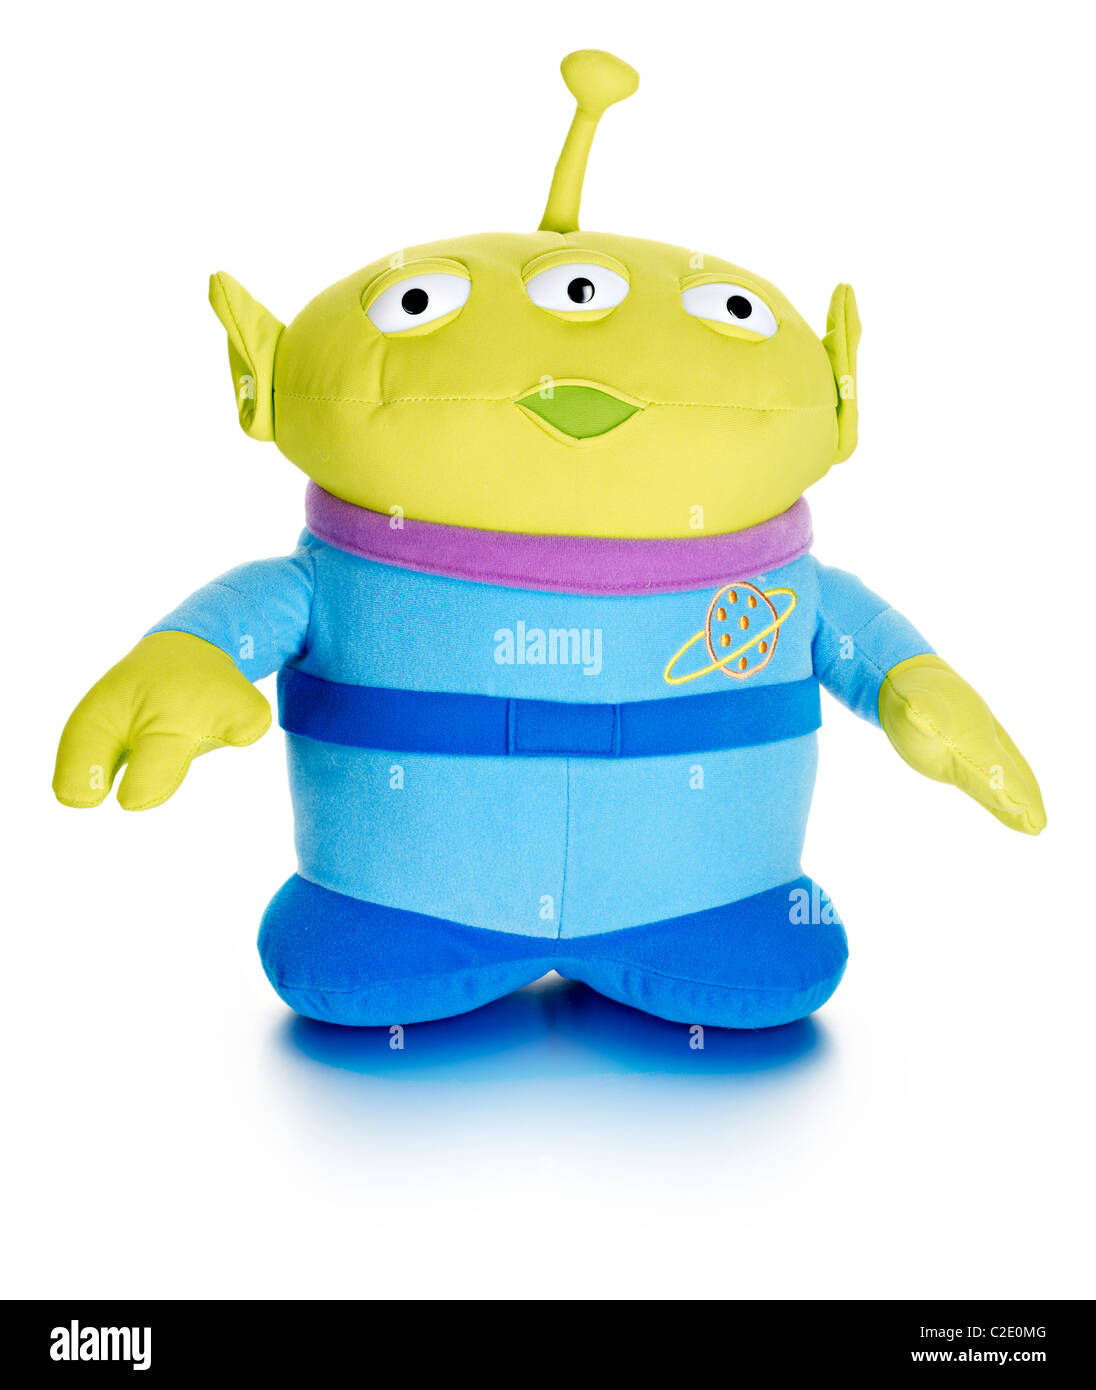 Alien toy story film soft toy - Stock Image